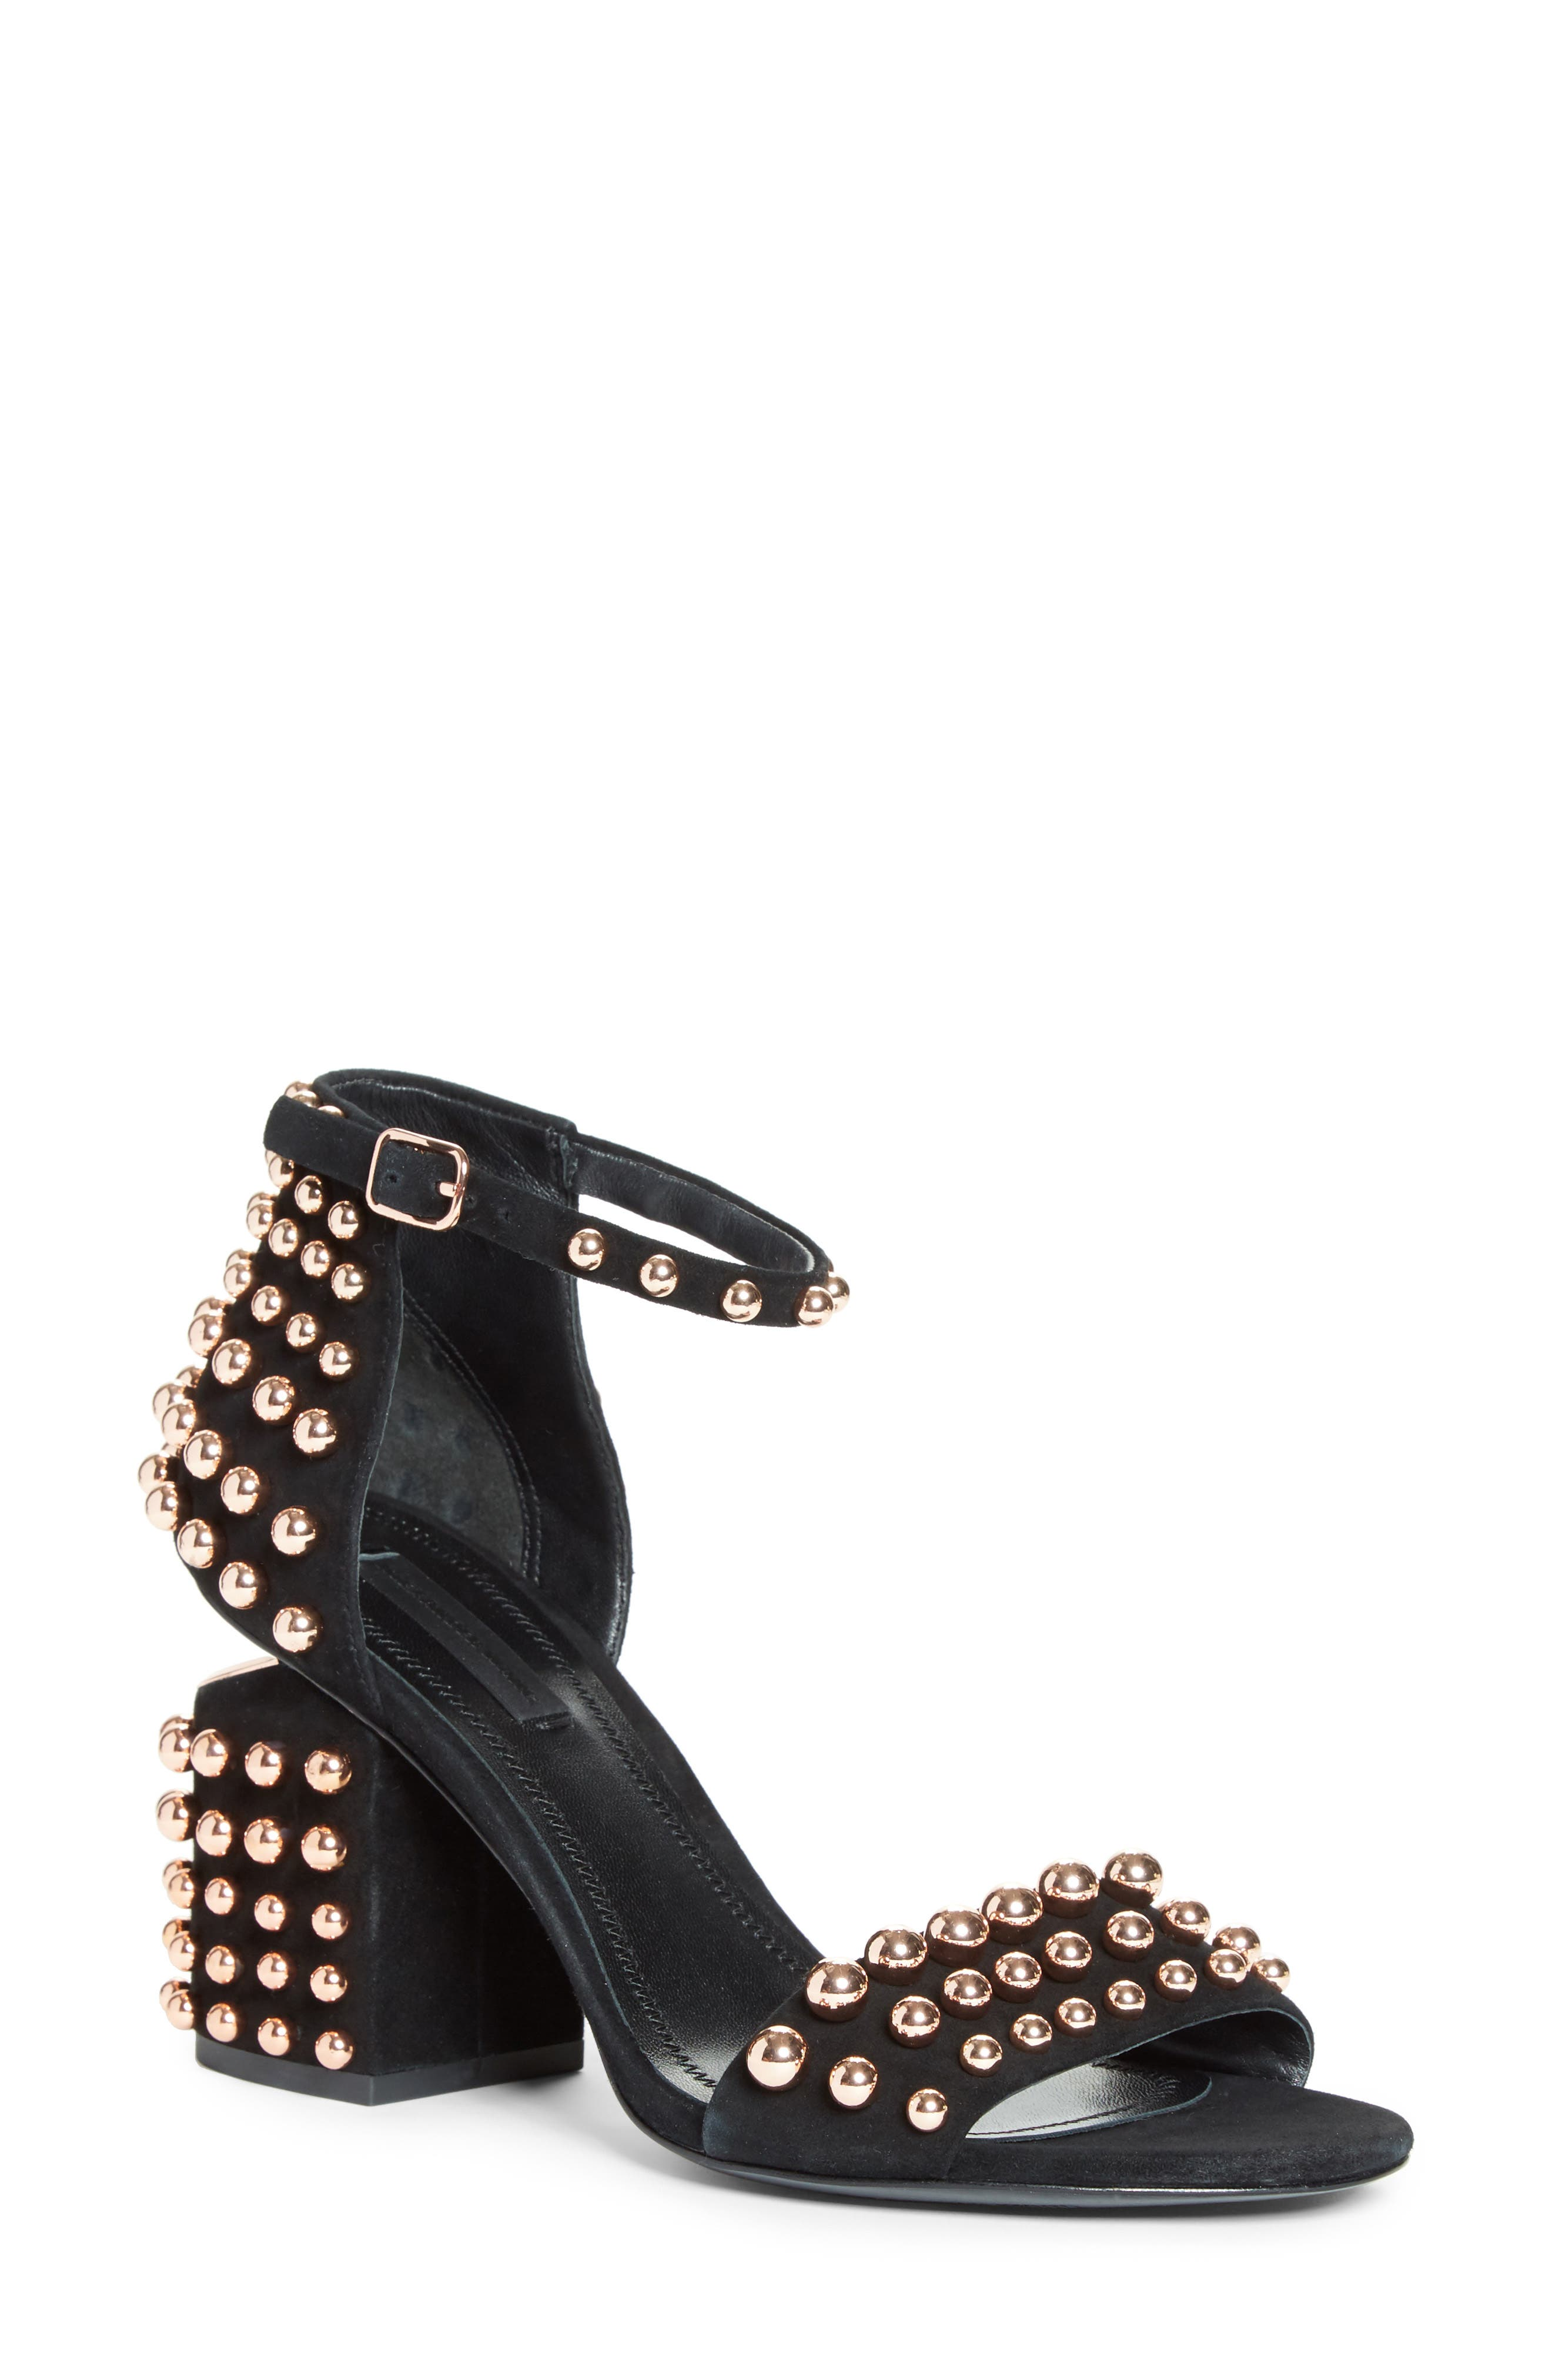 Main Image - Alexander Wang Studded Abby Sandal (Women) (Nordstrom Exclusive)